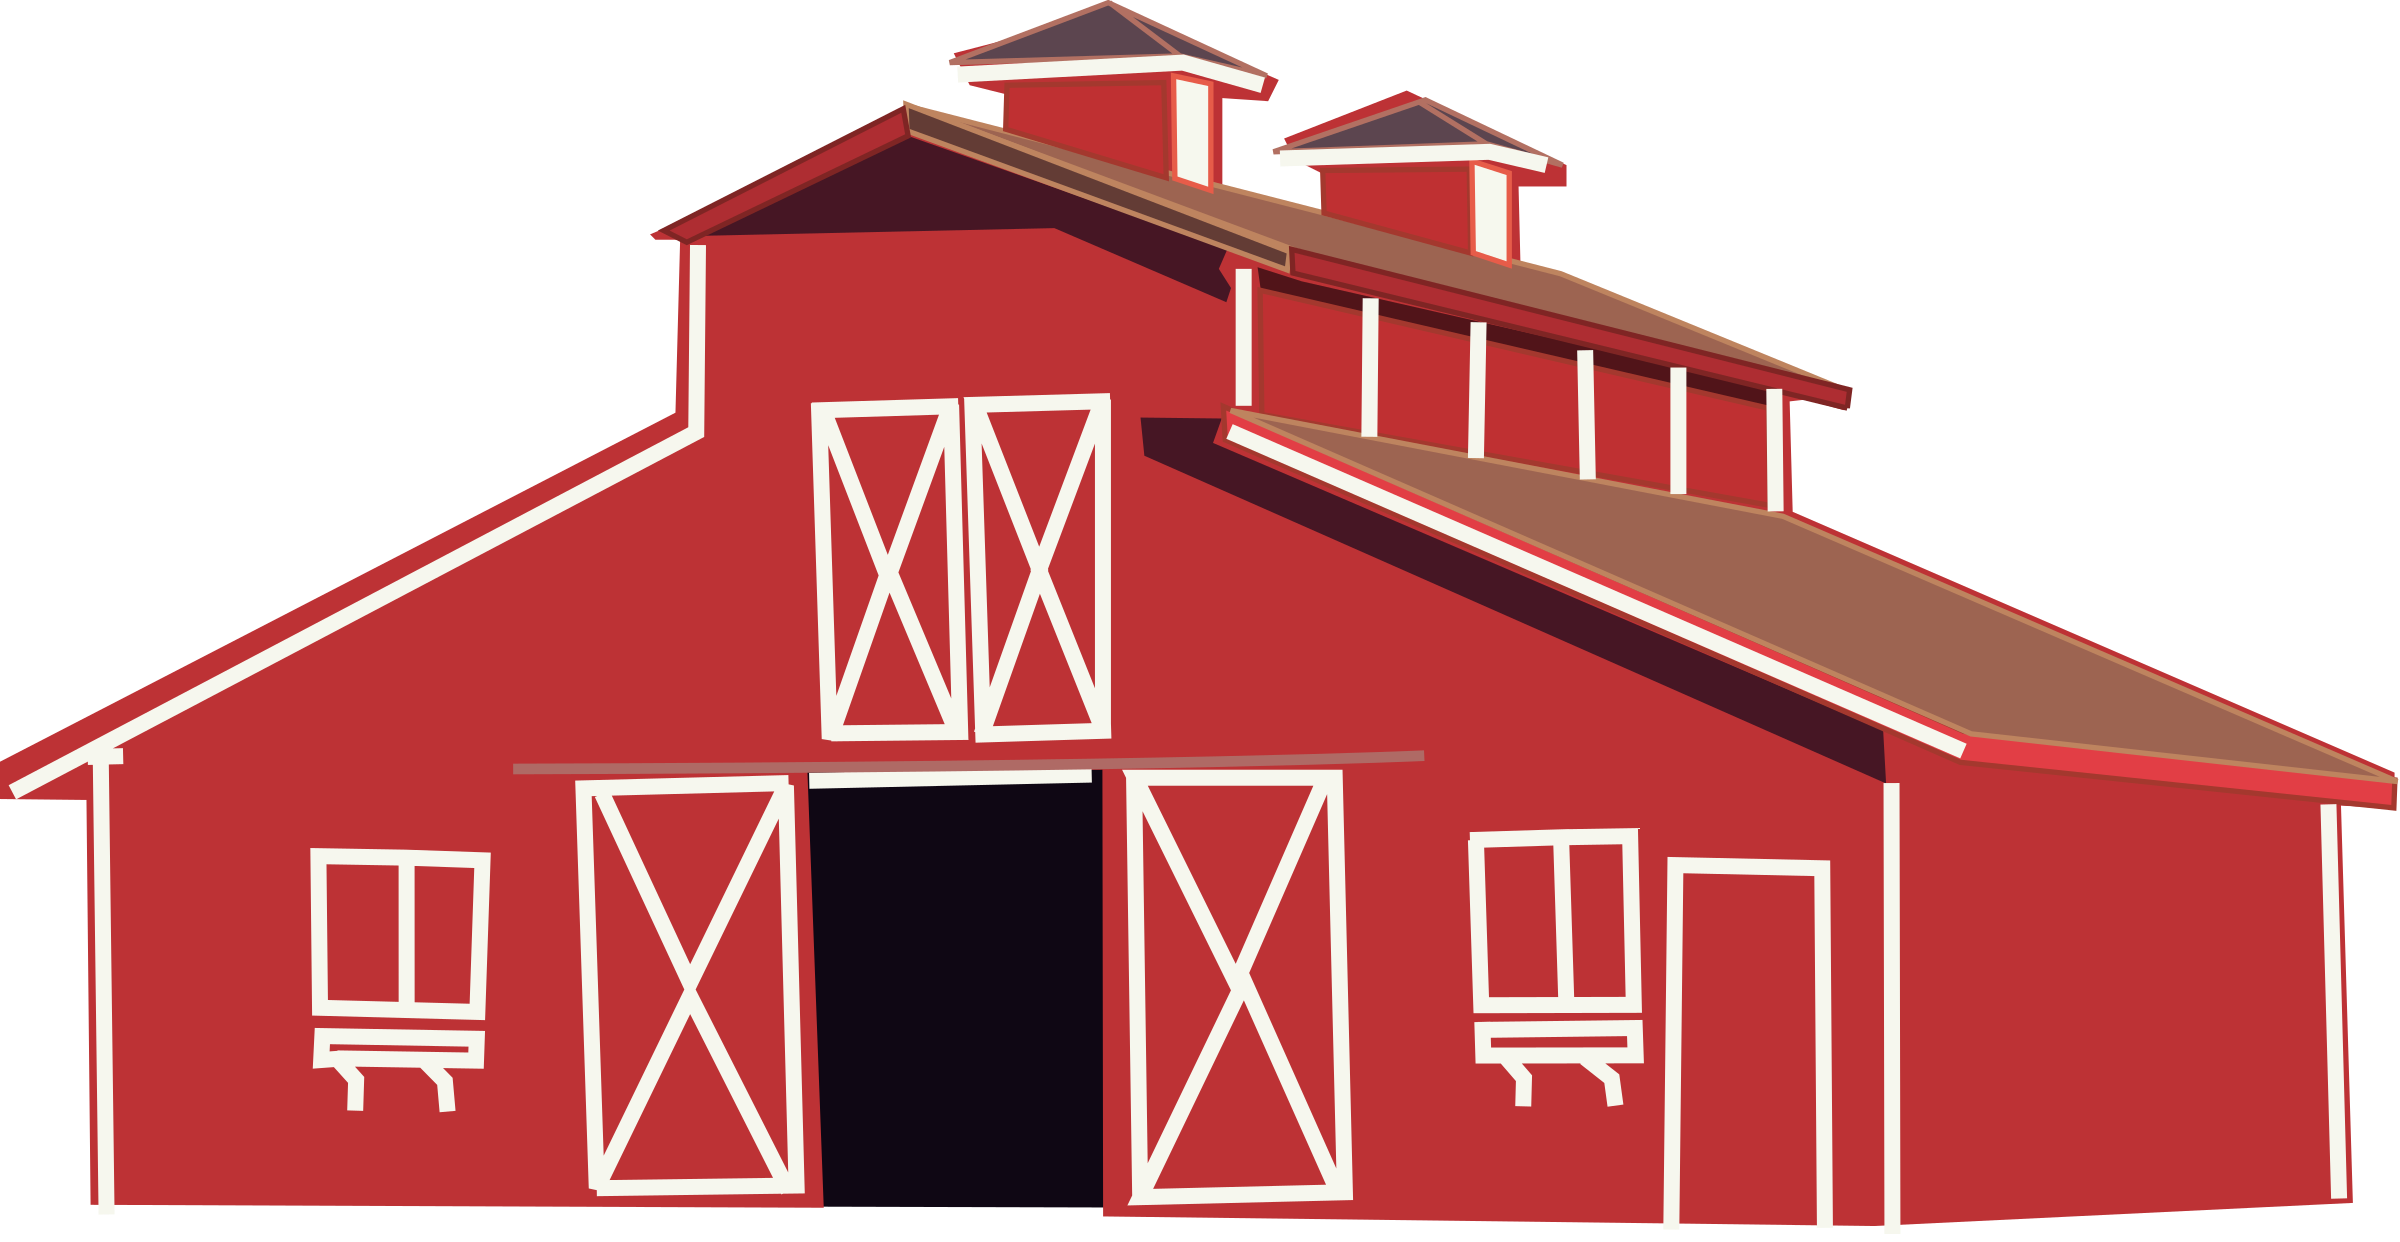 graphic transparent download Big image png. Barn clipart red barn.